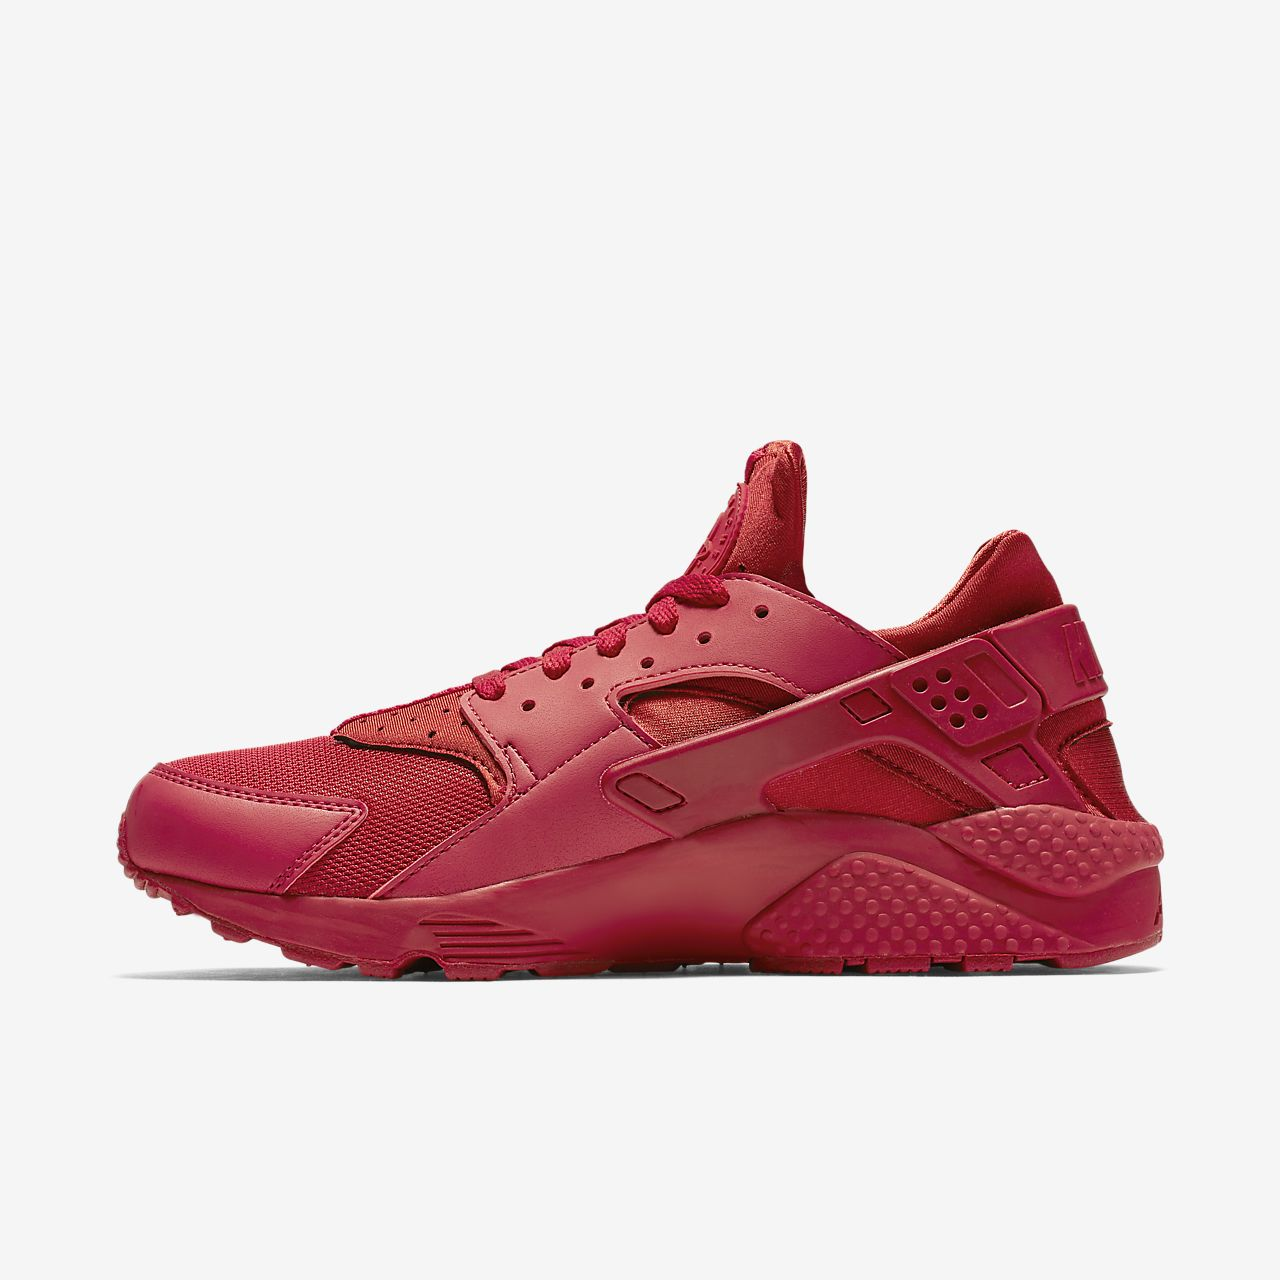 54e5c8be5e5 Nike Air Huarache Men s Shoe. Nike.com